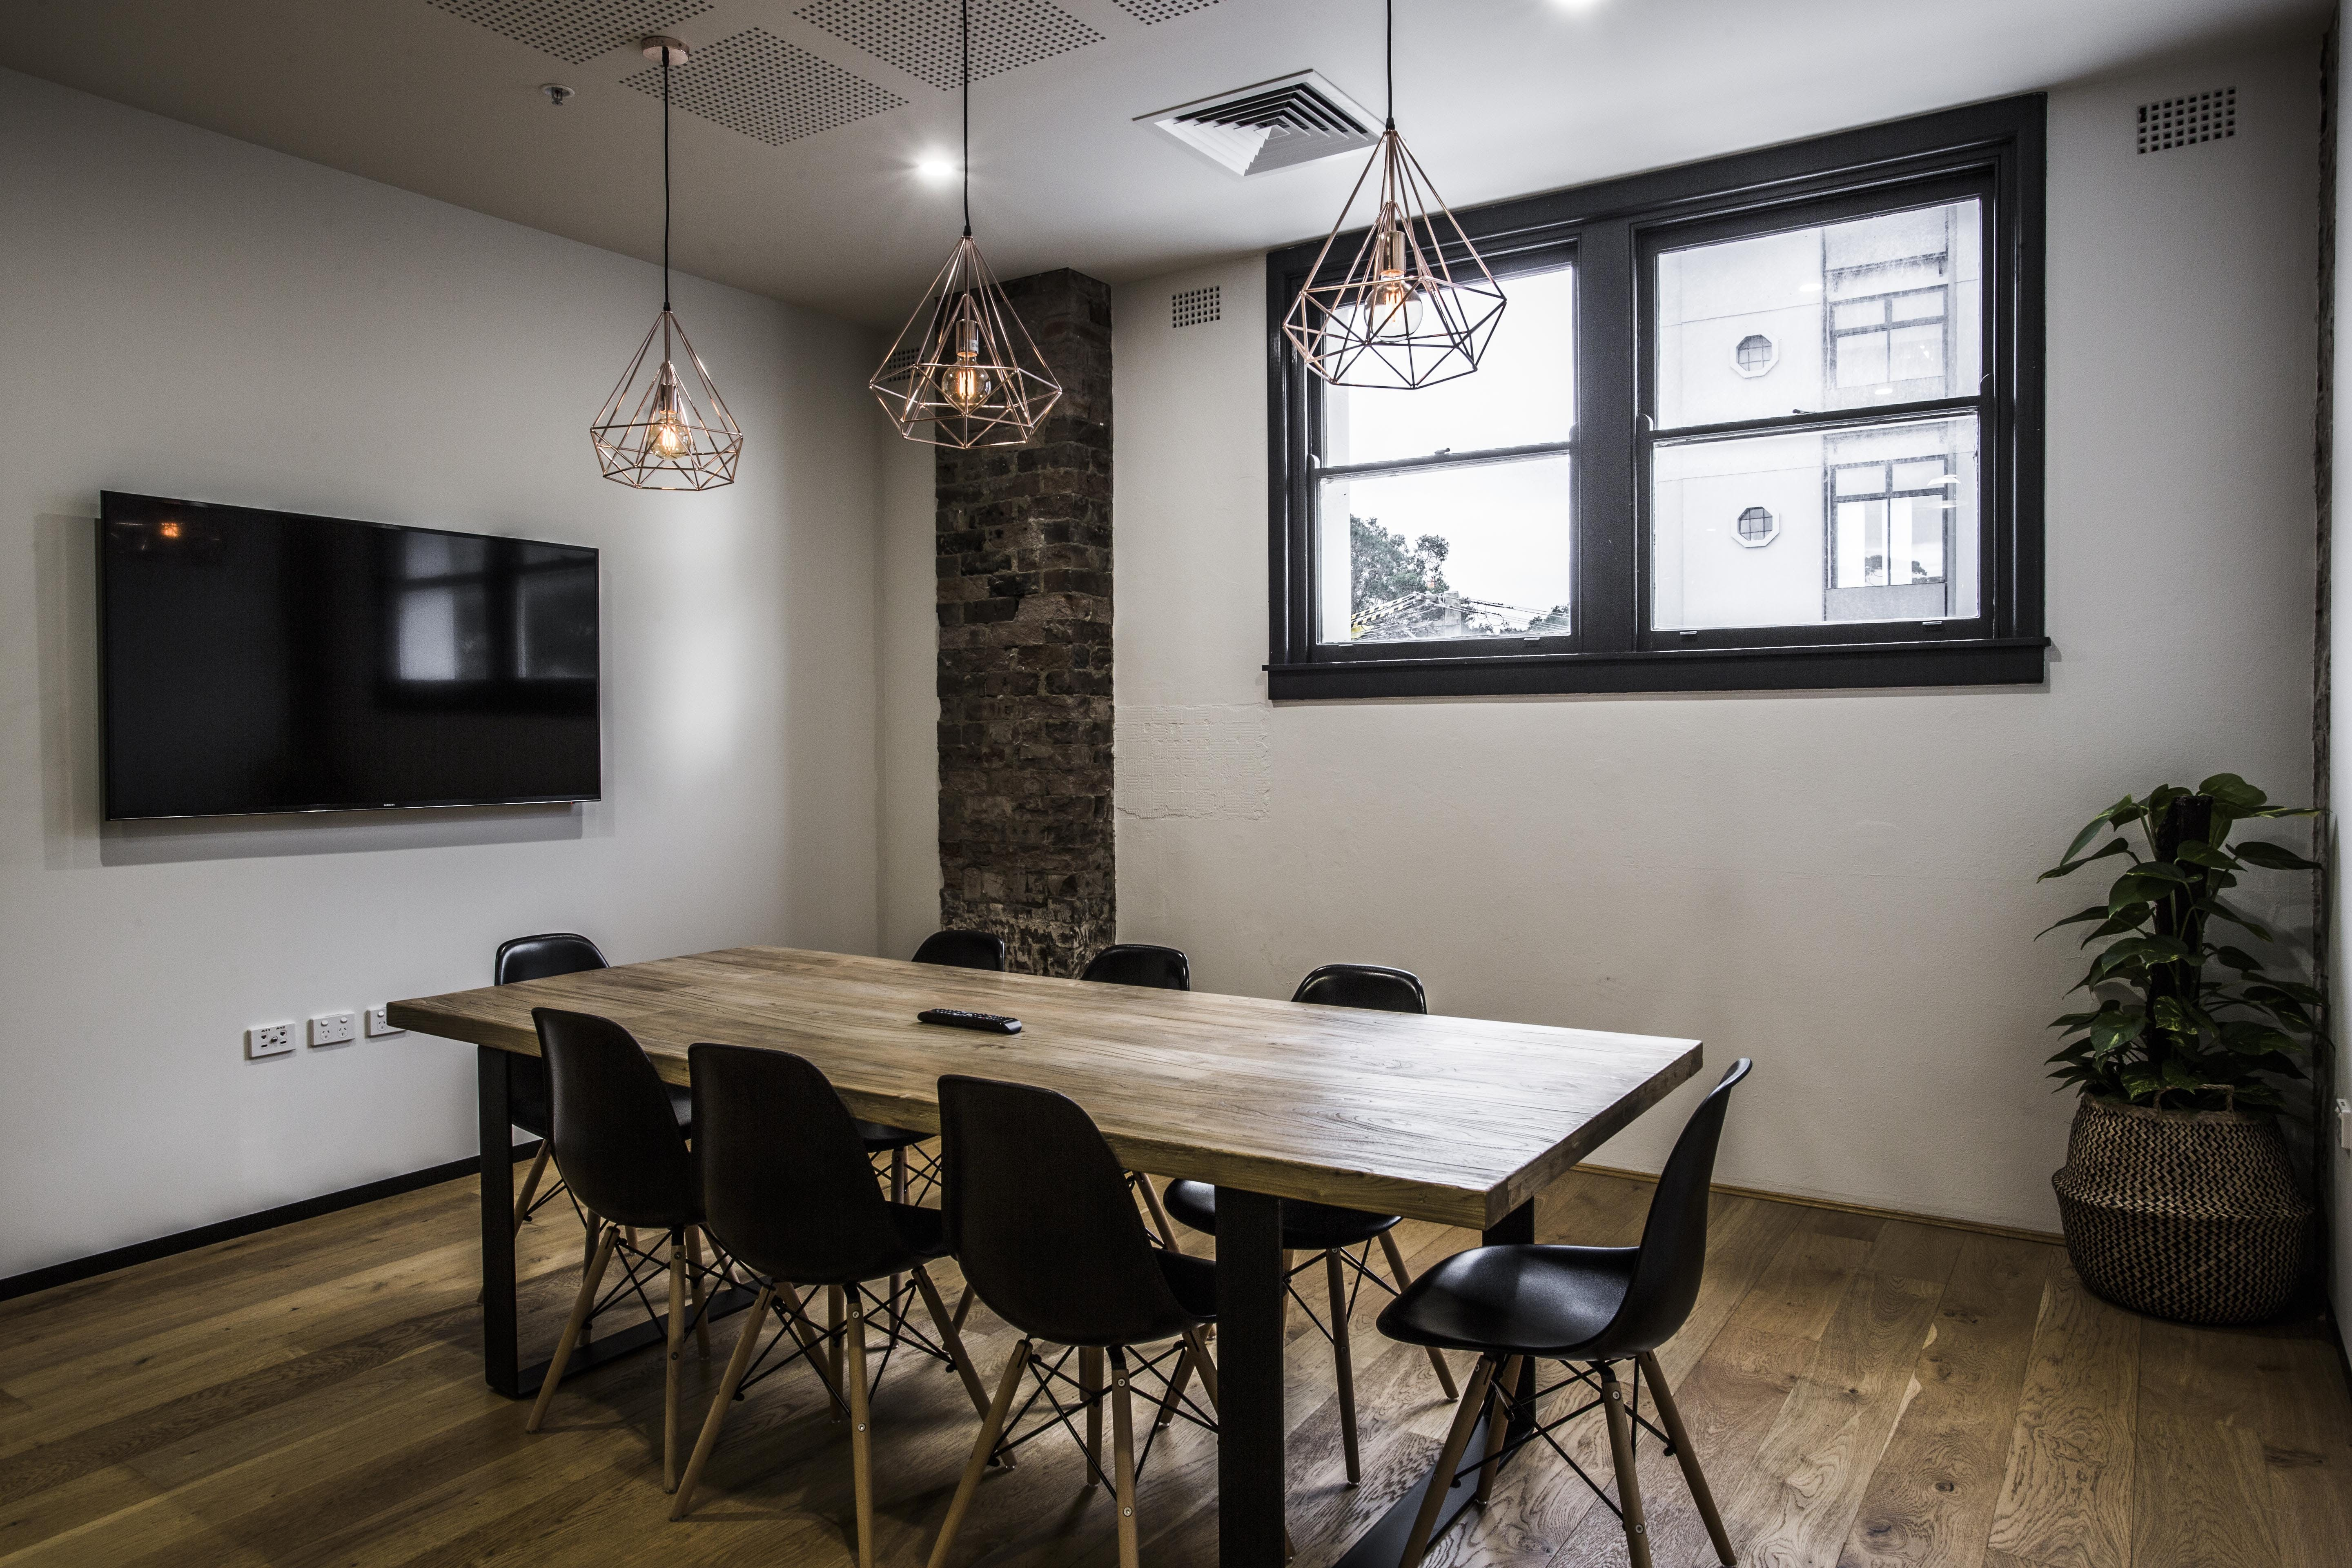 Meeting room at Cohouse Studios, image 1